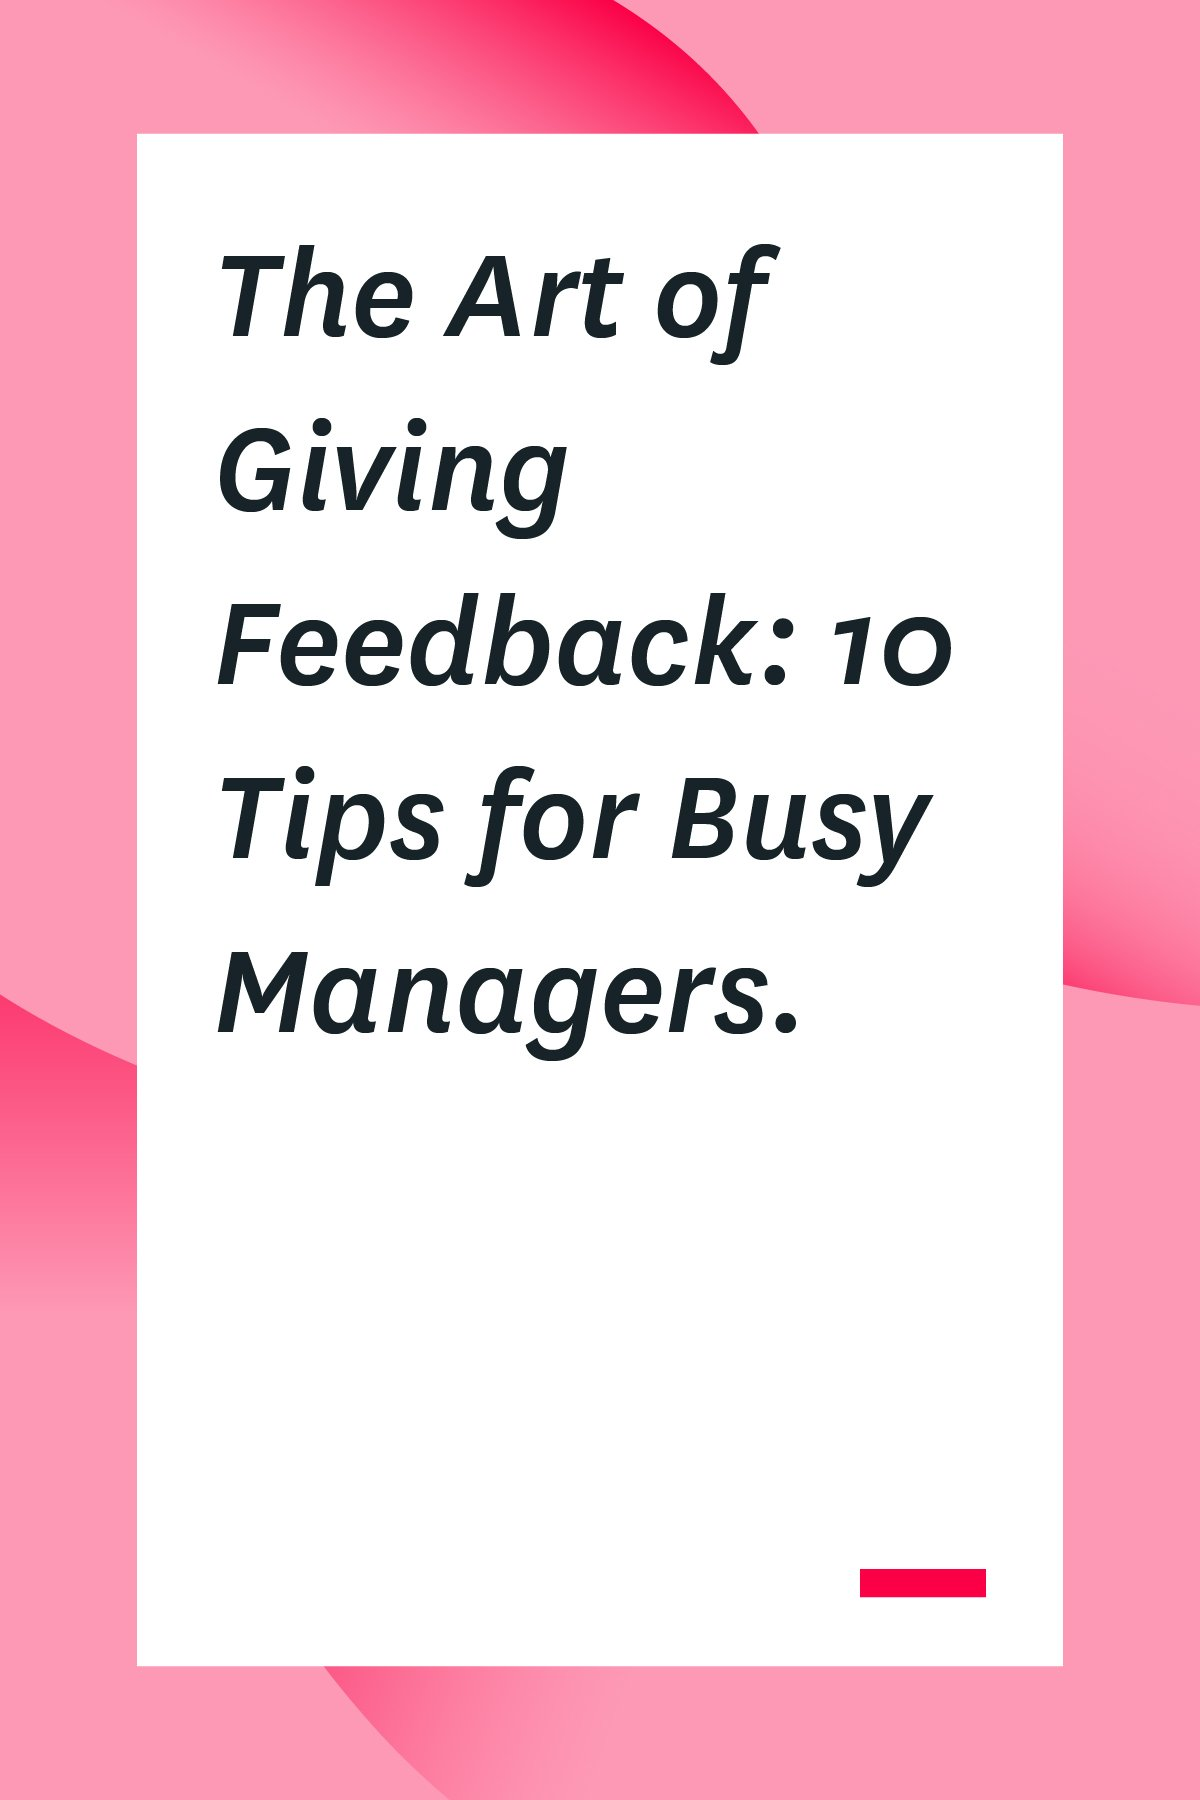 Whether you're giving positive feedback or need some tips for giving negative feedback, we've got you covered. Here's how to give feedback to your employees in a way that's respectful and useful.